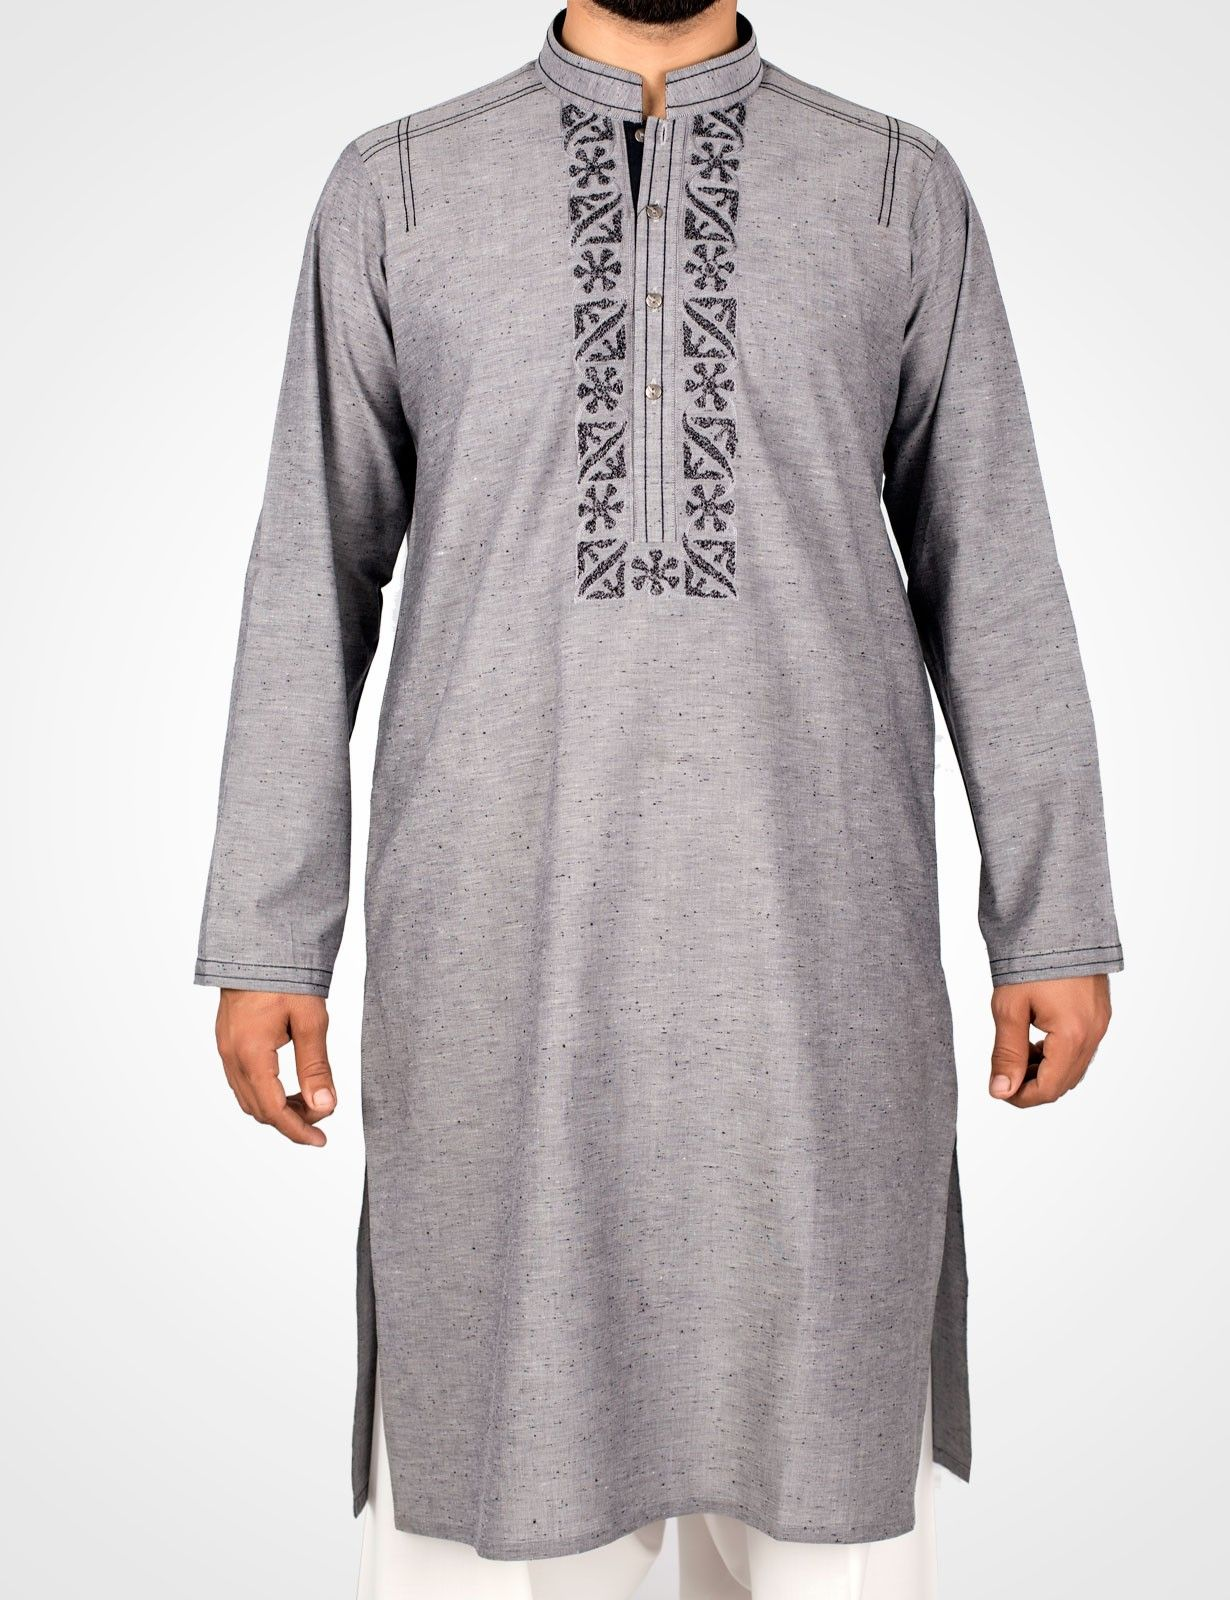 Stylish Kurta Collection For Summer By Cambridge | PK Vogue  #menkurtashalwar #kurtashalwar #kurta #kurtadesigns #kurtastyle